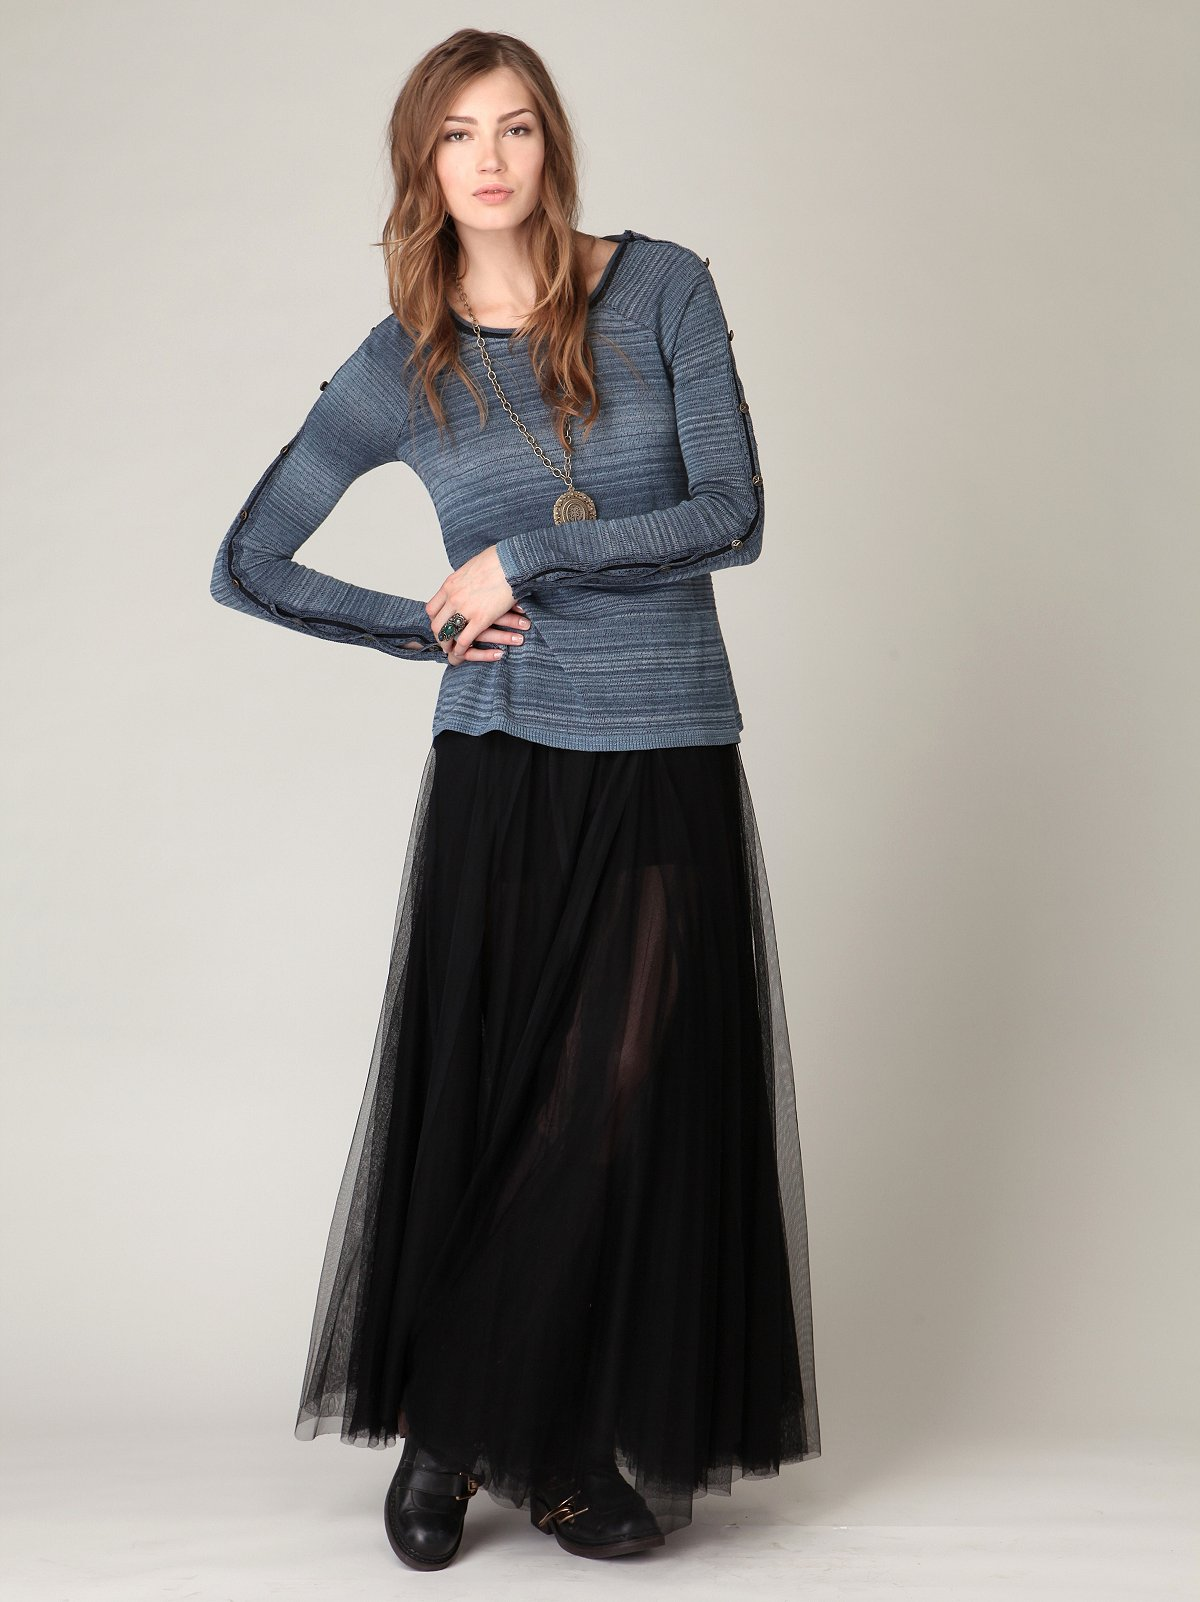 FP-1 Netted Layers Maxi Skirt